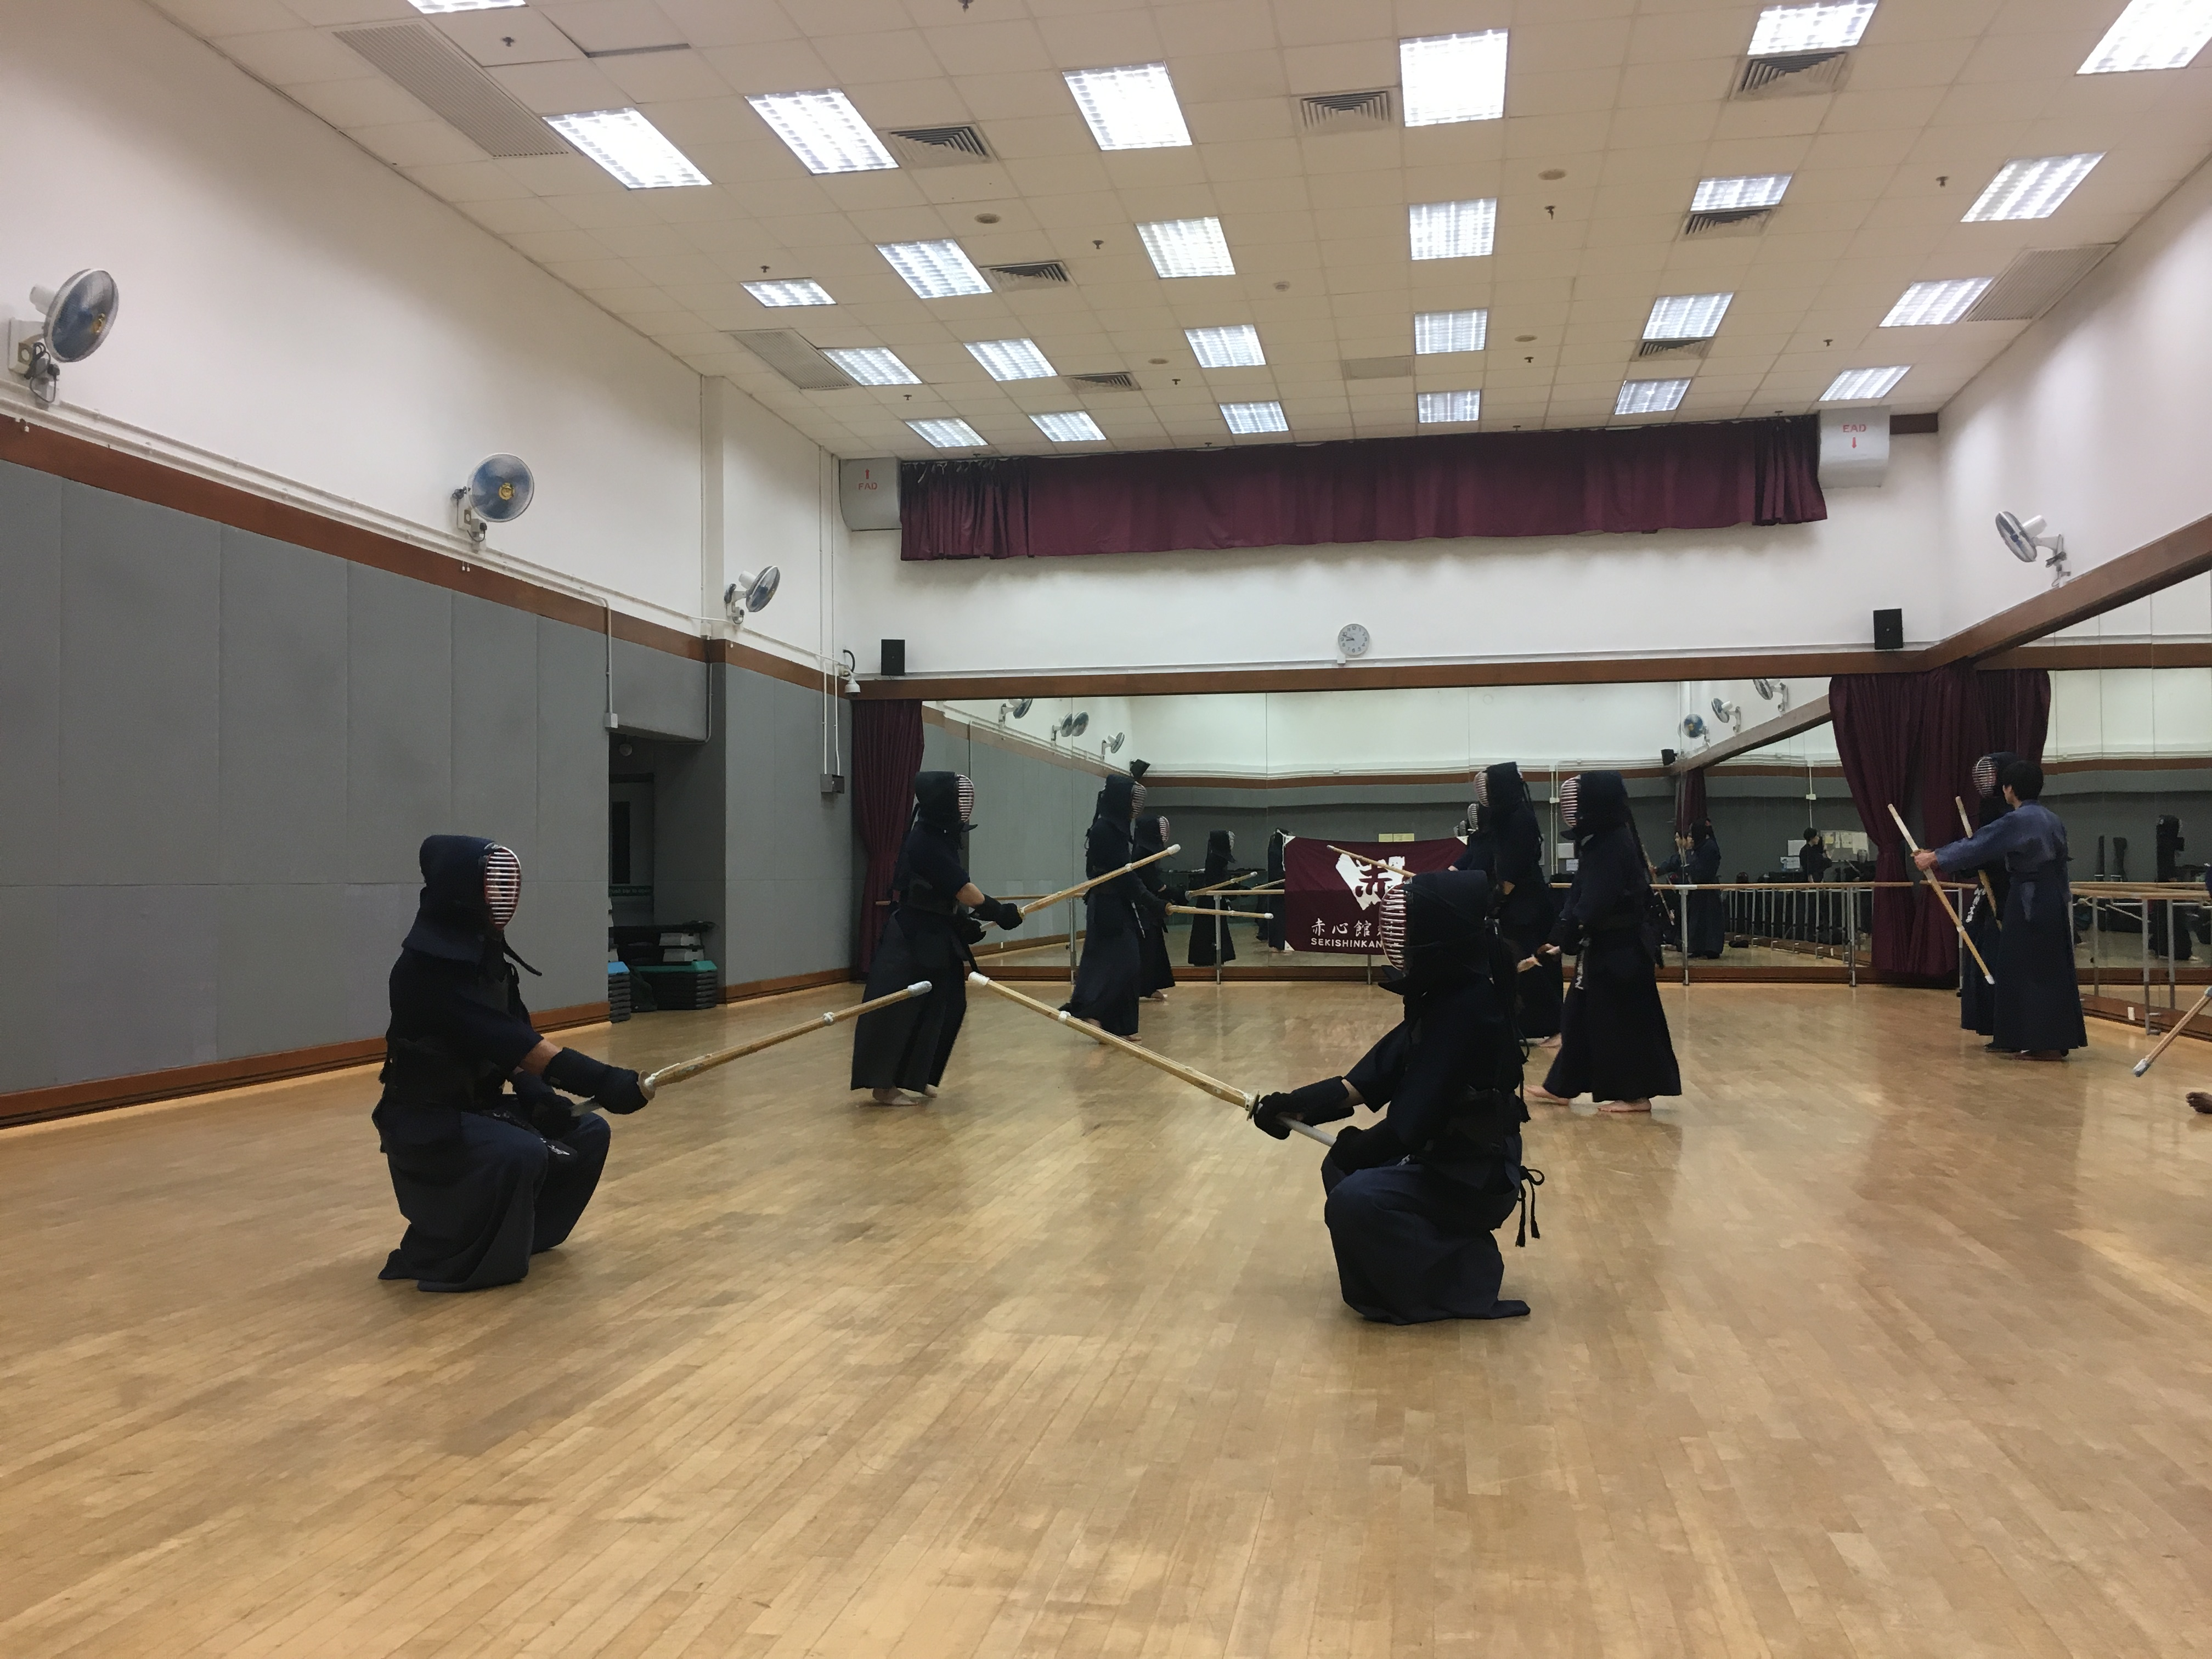 Photo of a practice room with numerous people in kendo gear.